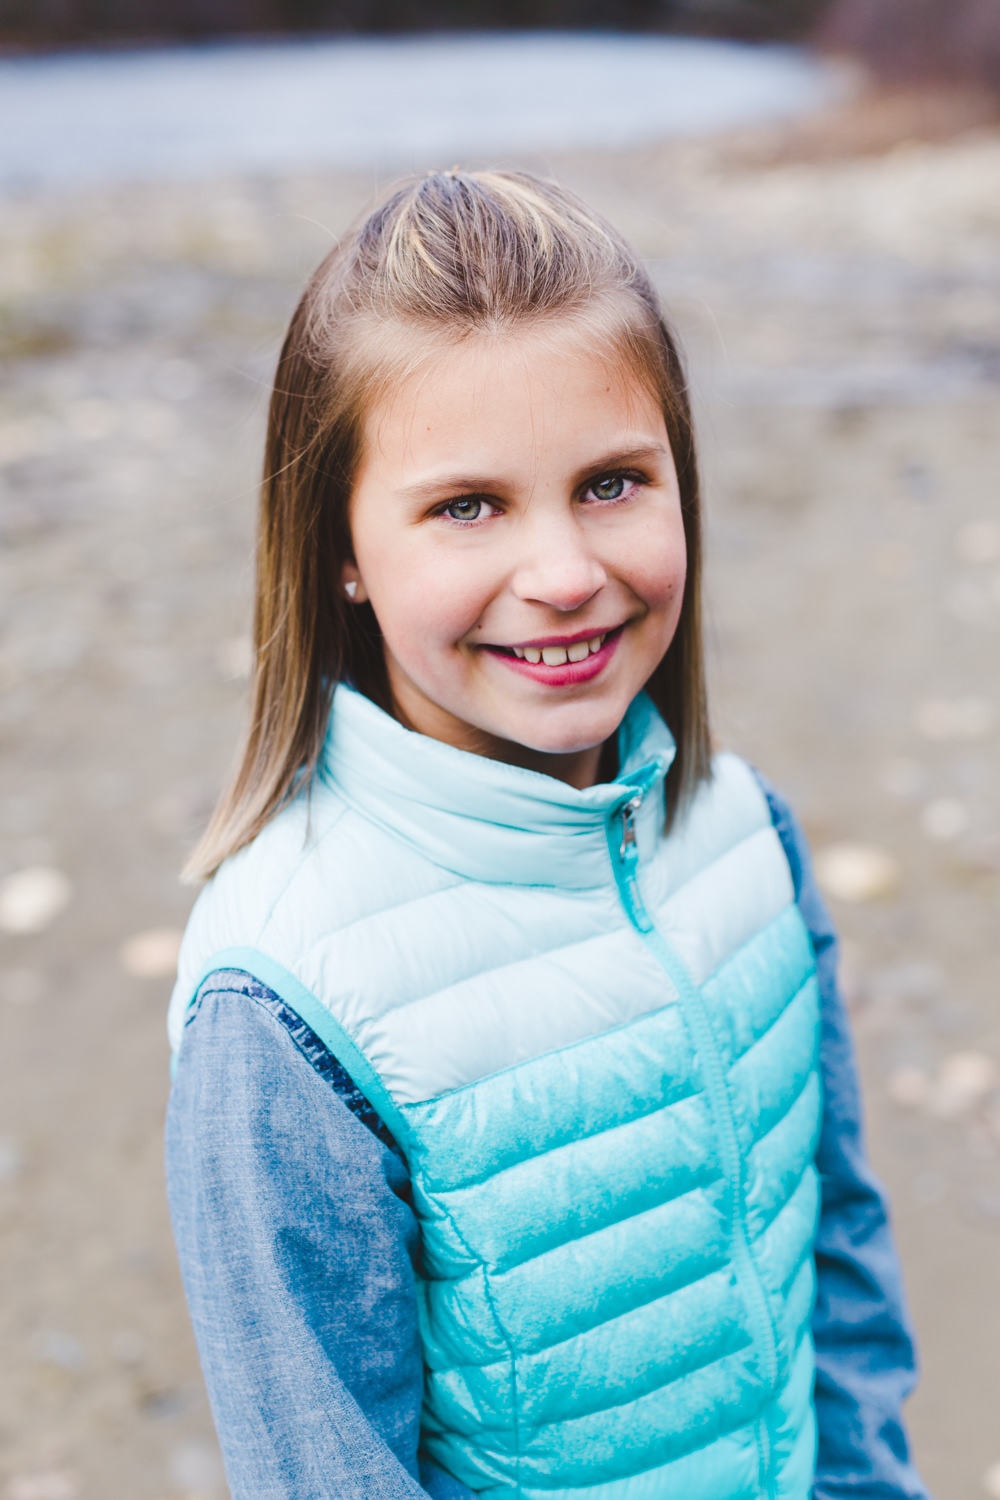 quesnel-family-photographers-quesnel-family-photography-cotton-wood-river-quesnel-bc-kelowna-photographer-julie-dorge (38 of 48).jpg